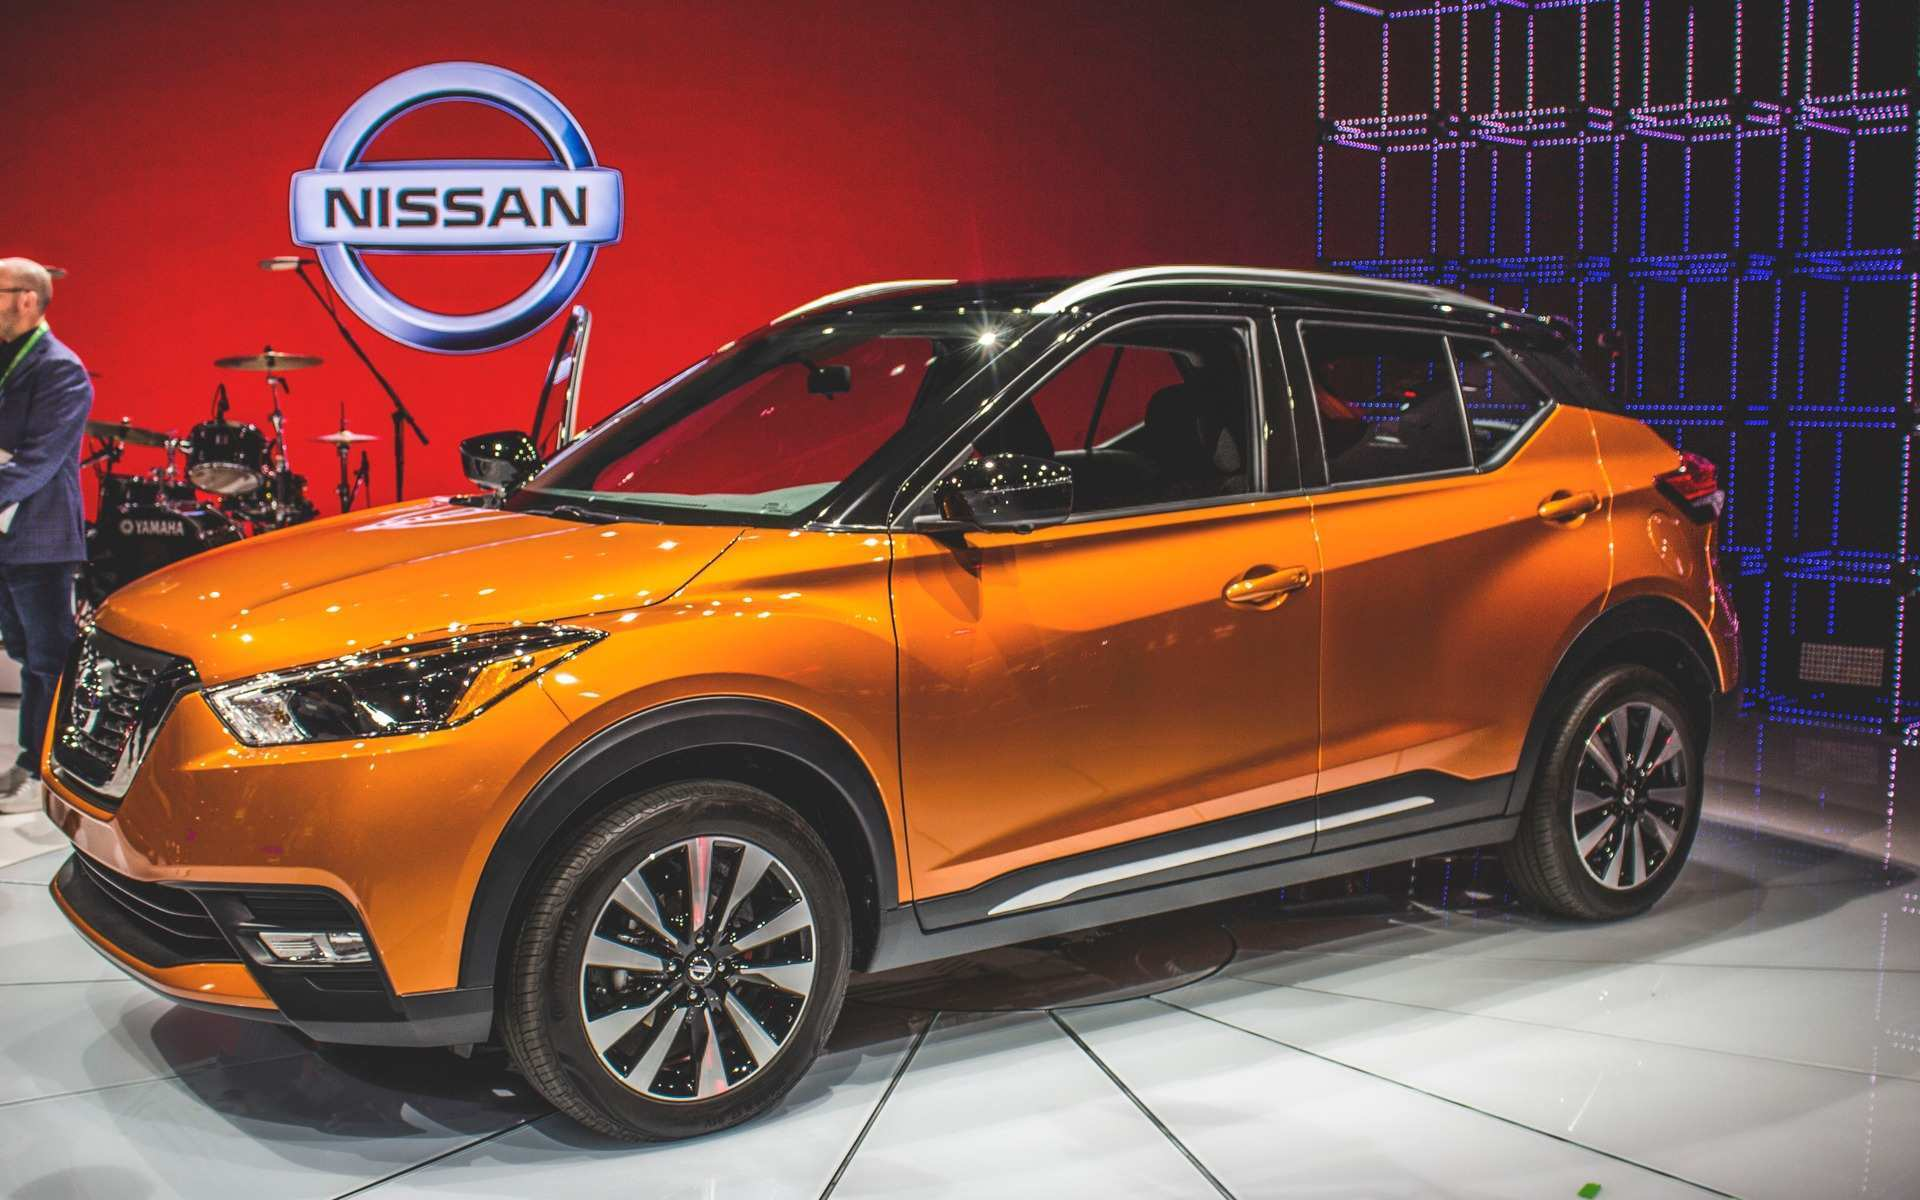 66 Best Review 2019 Nissan Kicks Review Price And Release Date Performance and New Engine by 2019 Nissan Kicks Review Price And Release Date